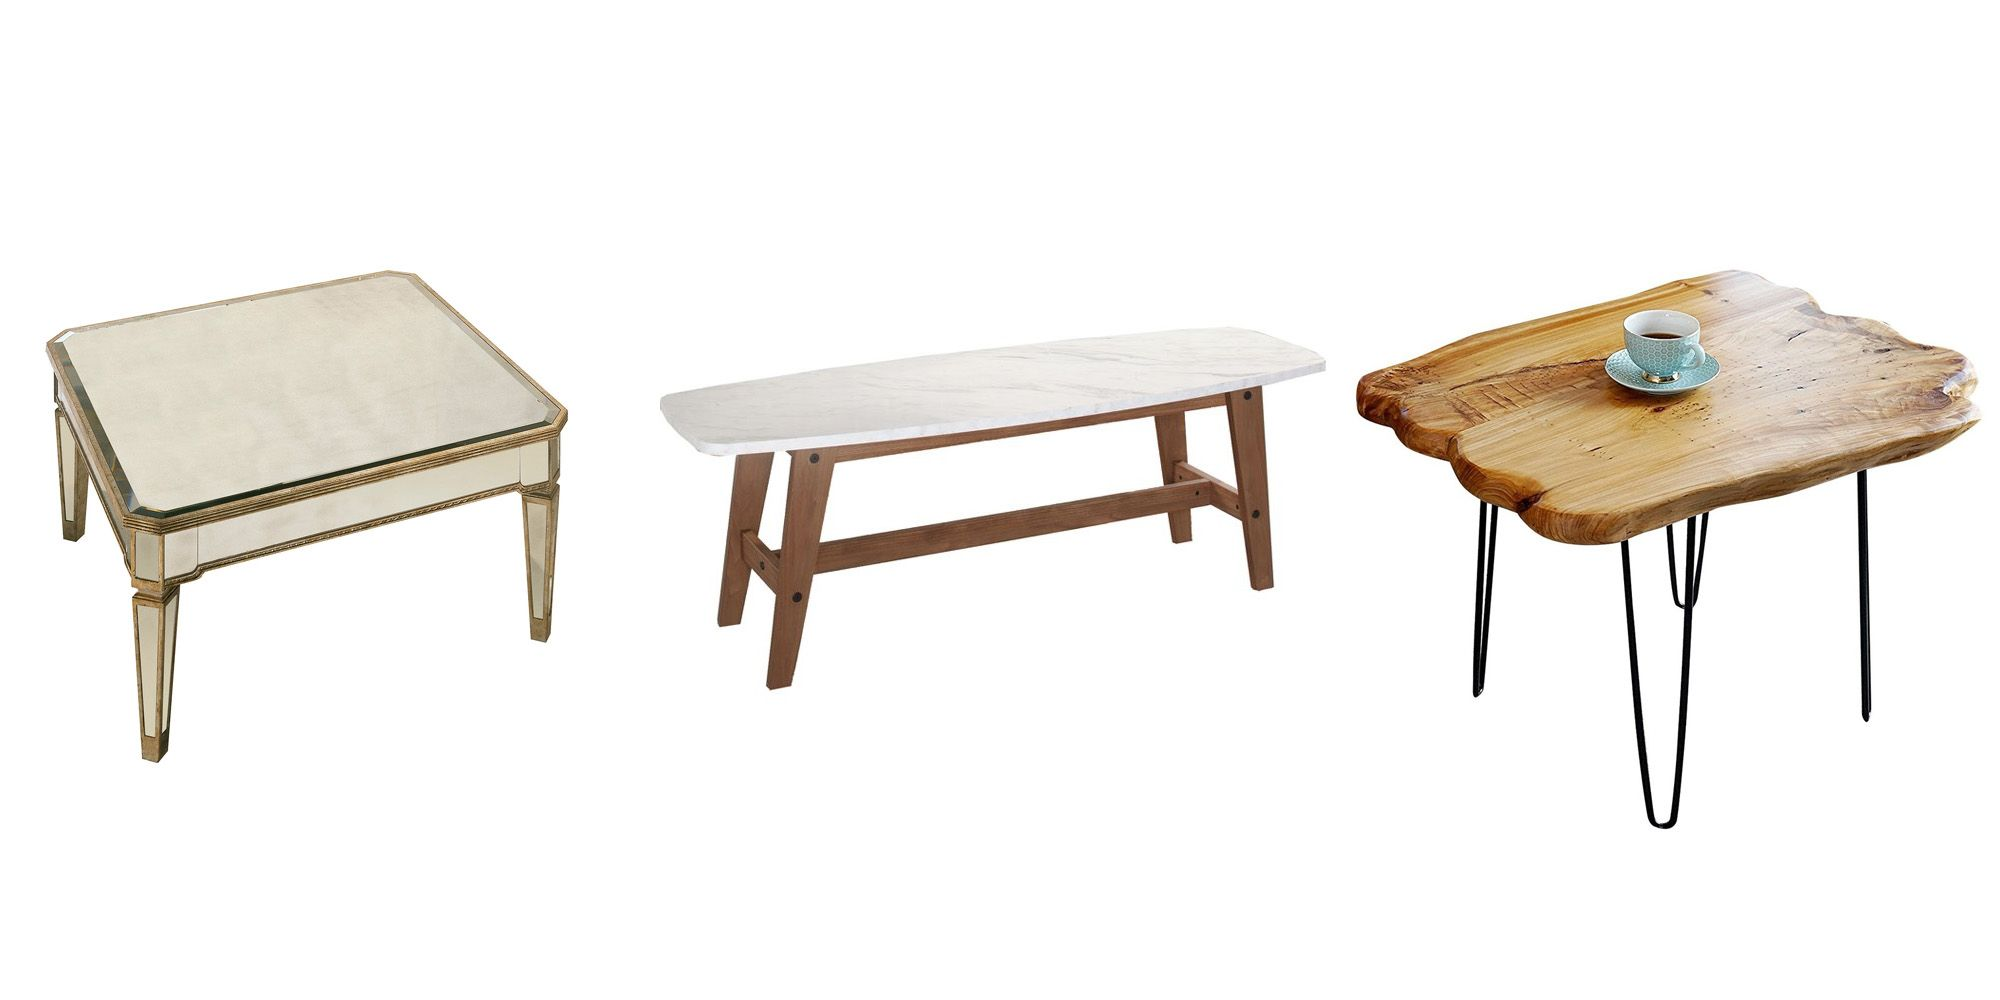 small coffee tables  sc 1 st  Elle Decor & 20 Best Small Coffee Tables - Furniture For Small Spaces